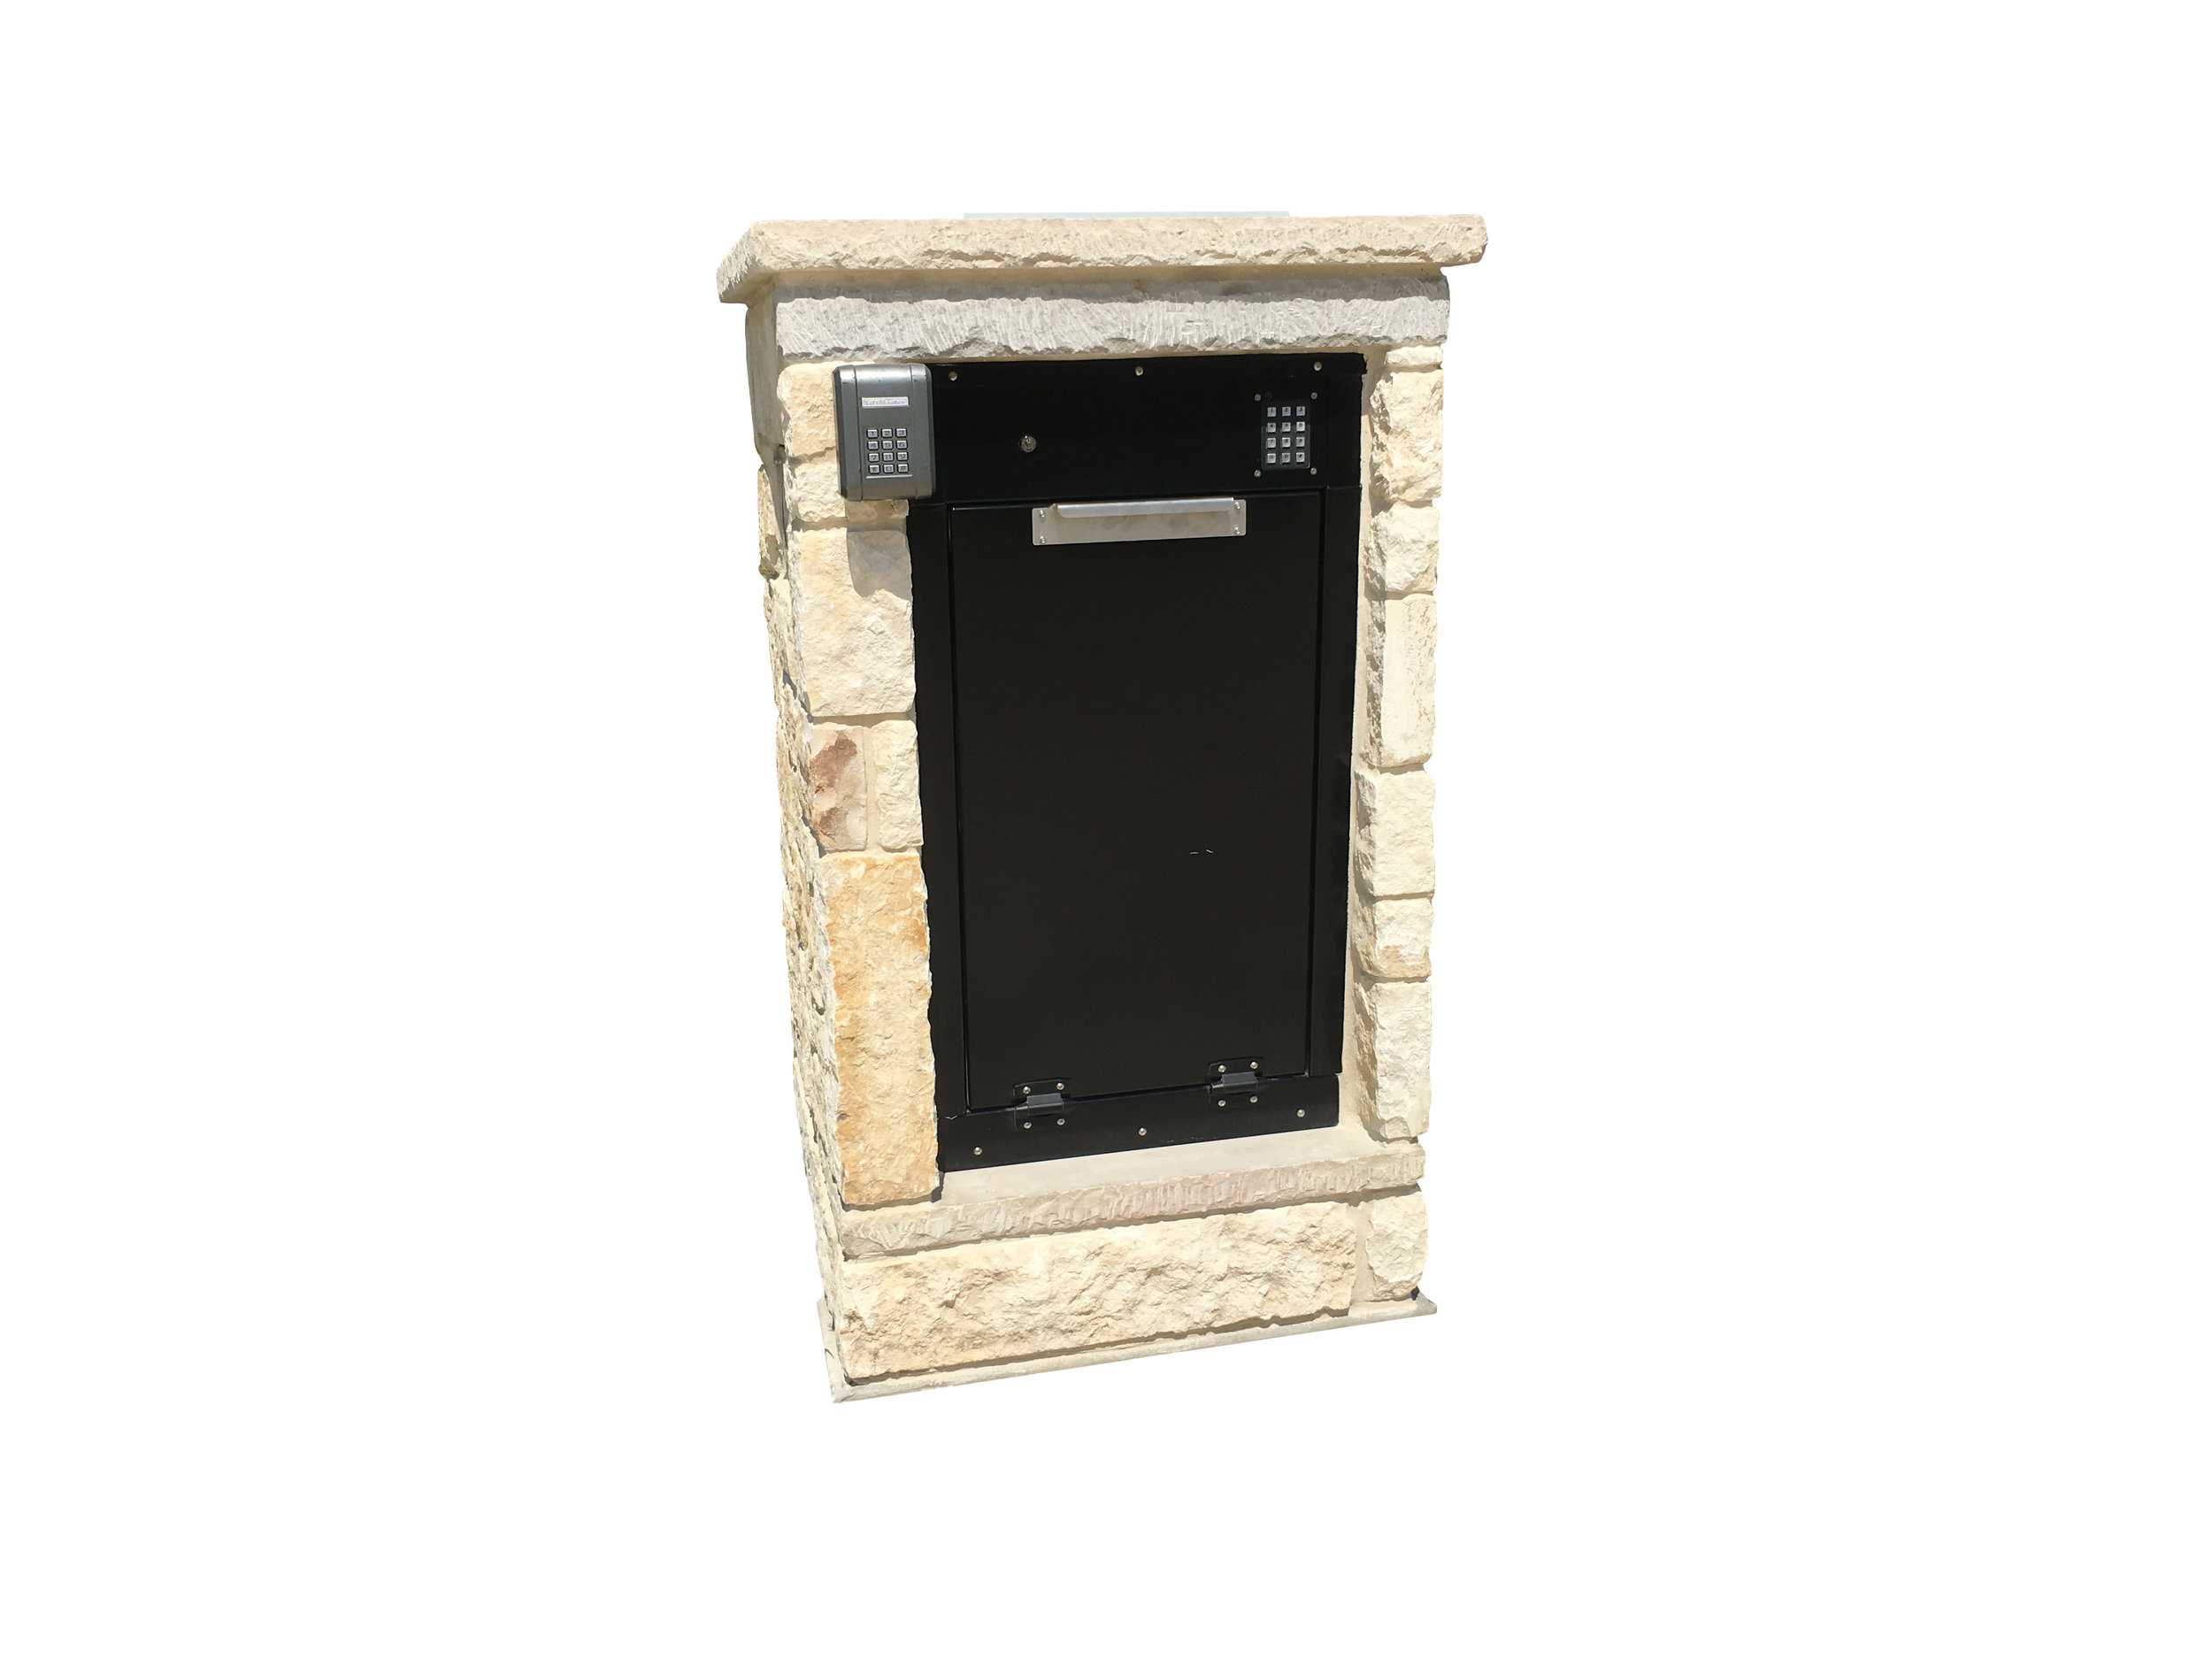 The Box Sentinel is designed to be installed in many different settings including within an exterior wall.